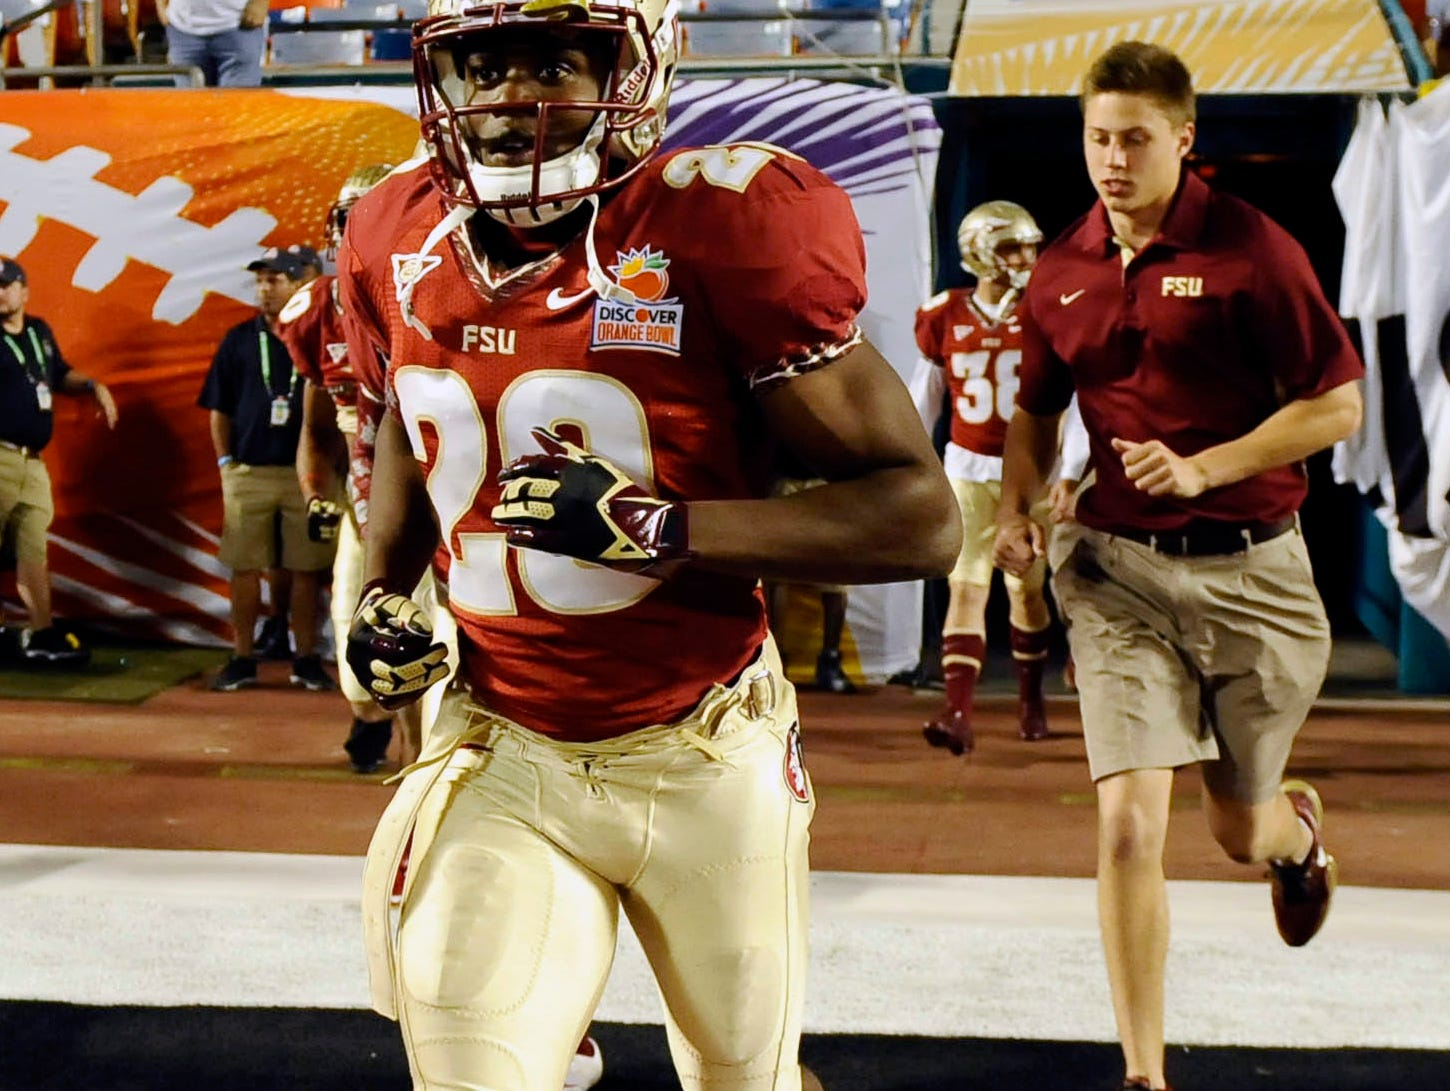 Jan 1, 2013; Miami Gardens, FL, USA; Florida State Seminoles defensive back Lamarcus Joyner (20) takes to the field for warm ups before the start of the game against the Northern Illinois Huskies at the 2013 Orange Bowl at Sun Life Stadium. Mandatory Credit: Ron Chenoy-USA TODAY Sports